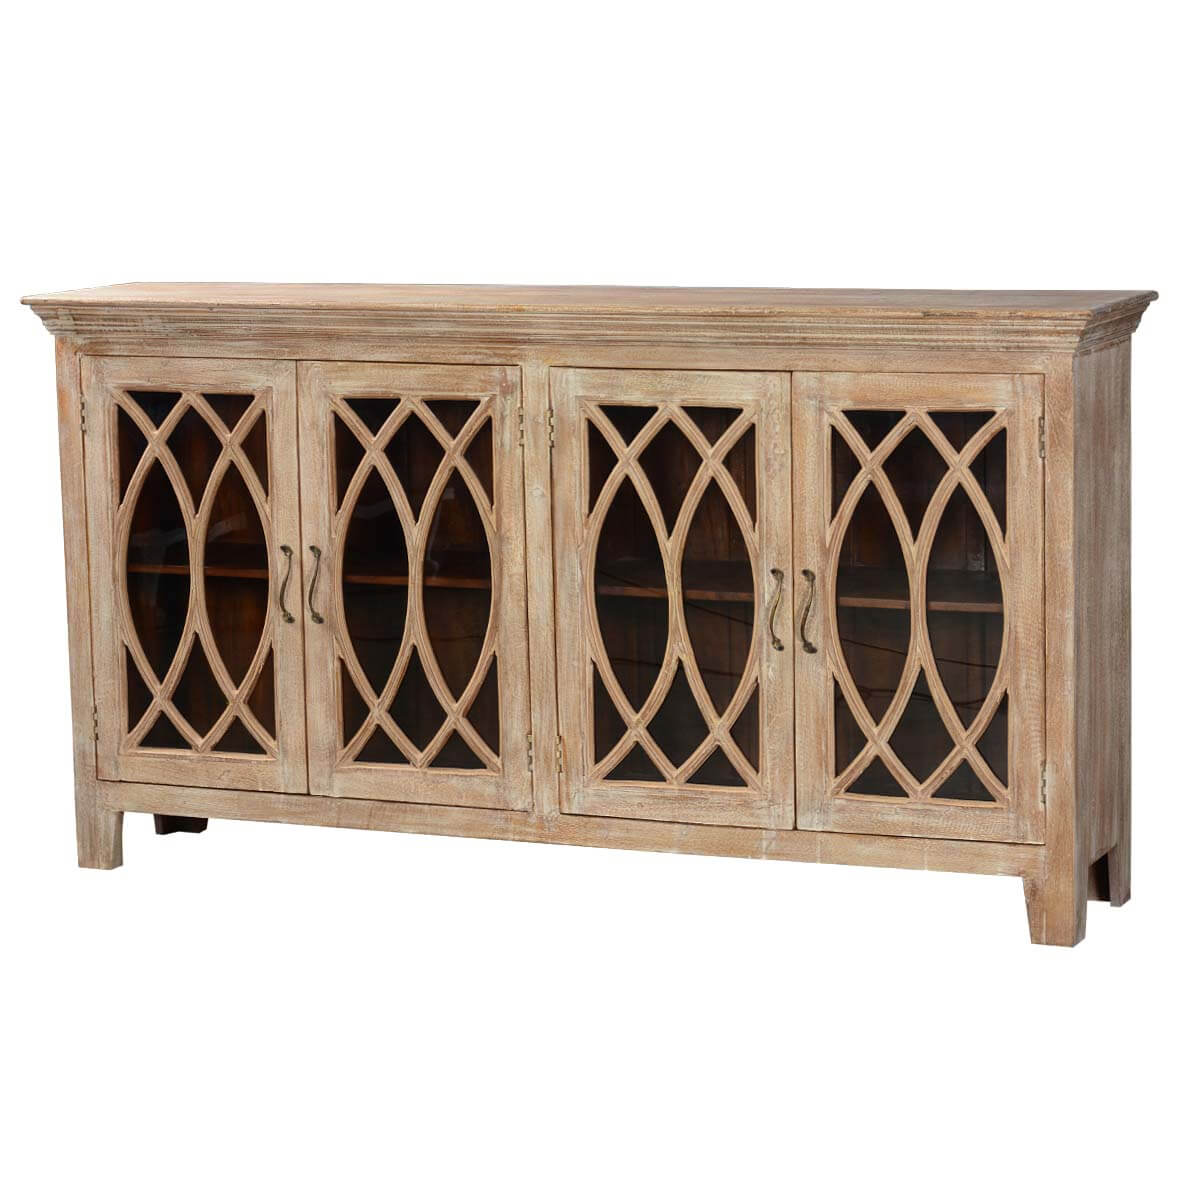 81 5 solid wood glass door sideboard 4 door rustic buffet for Sideboard glas